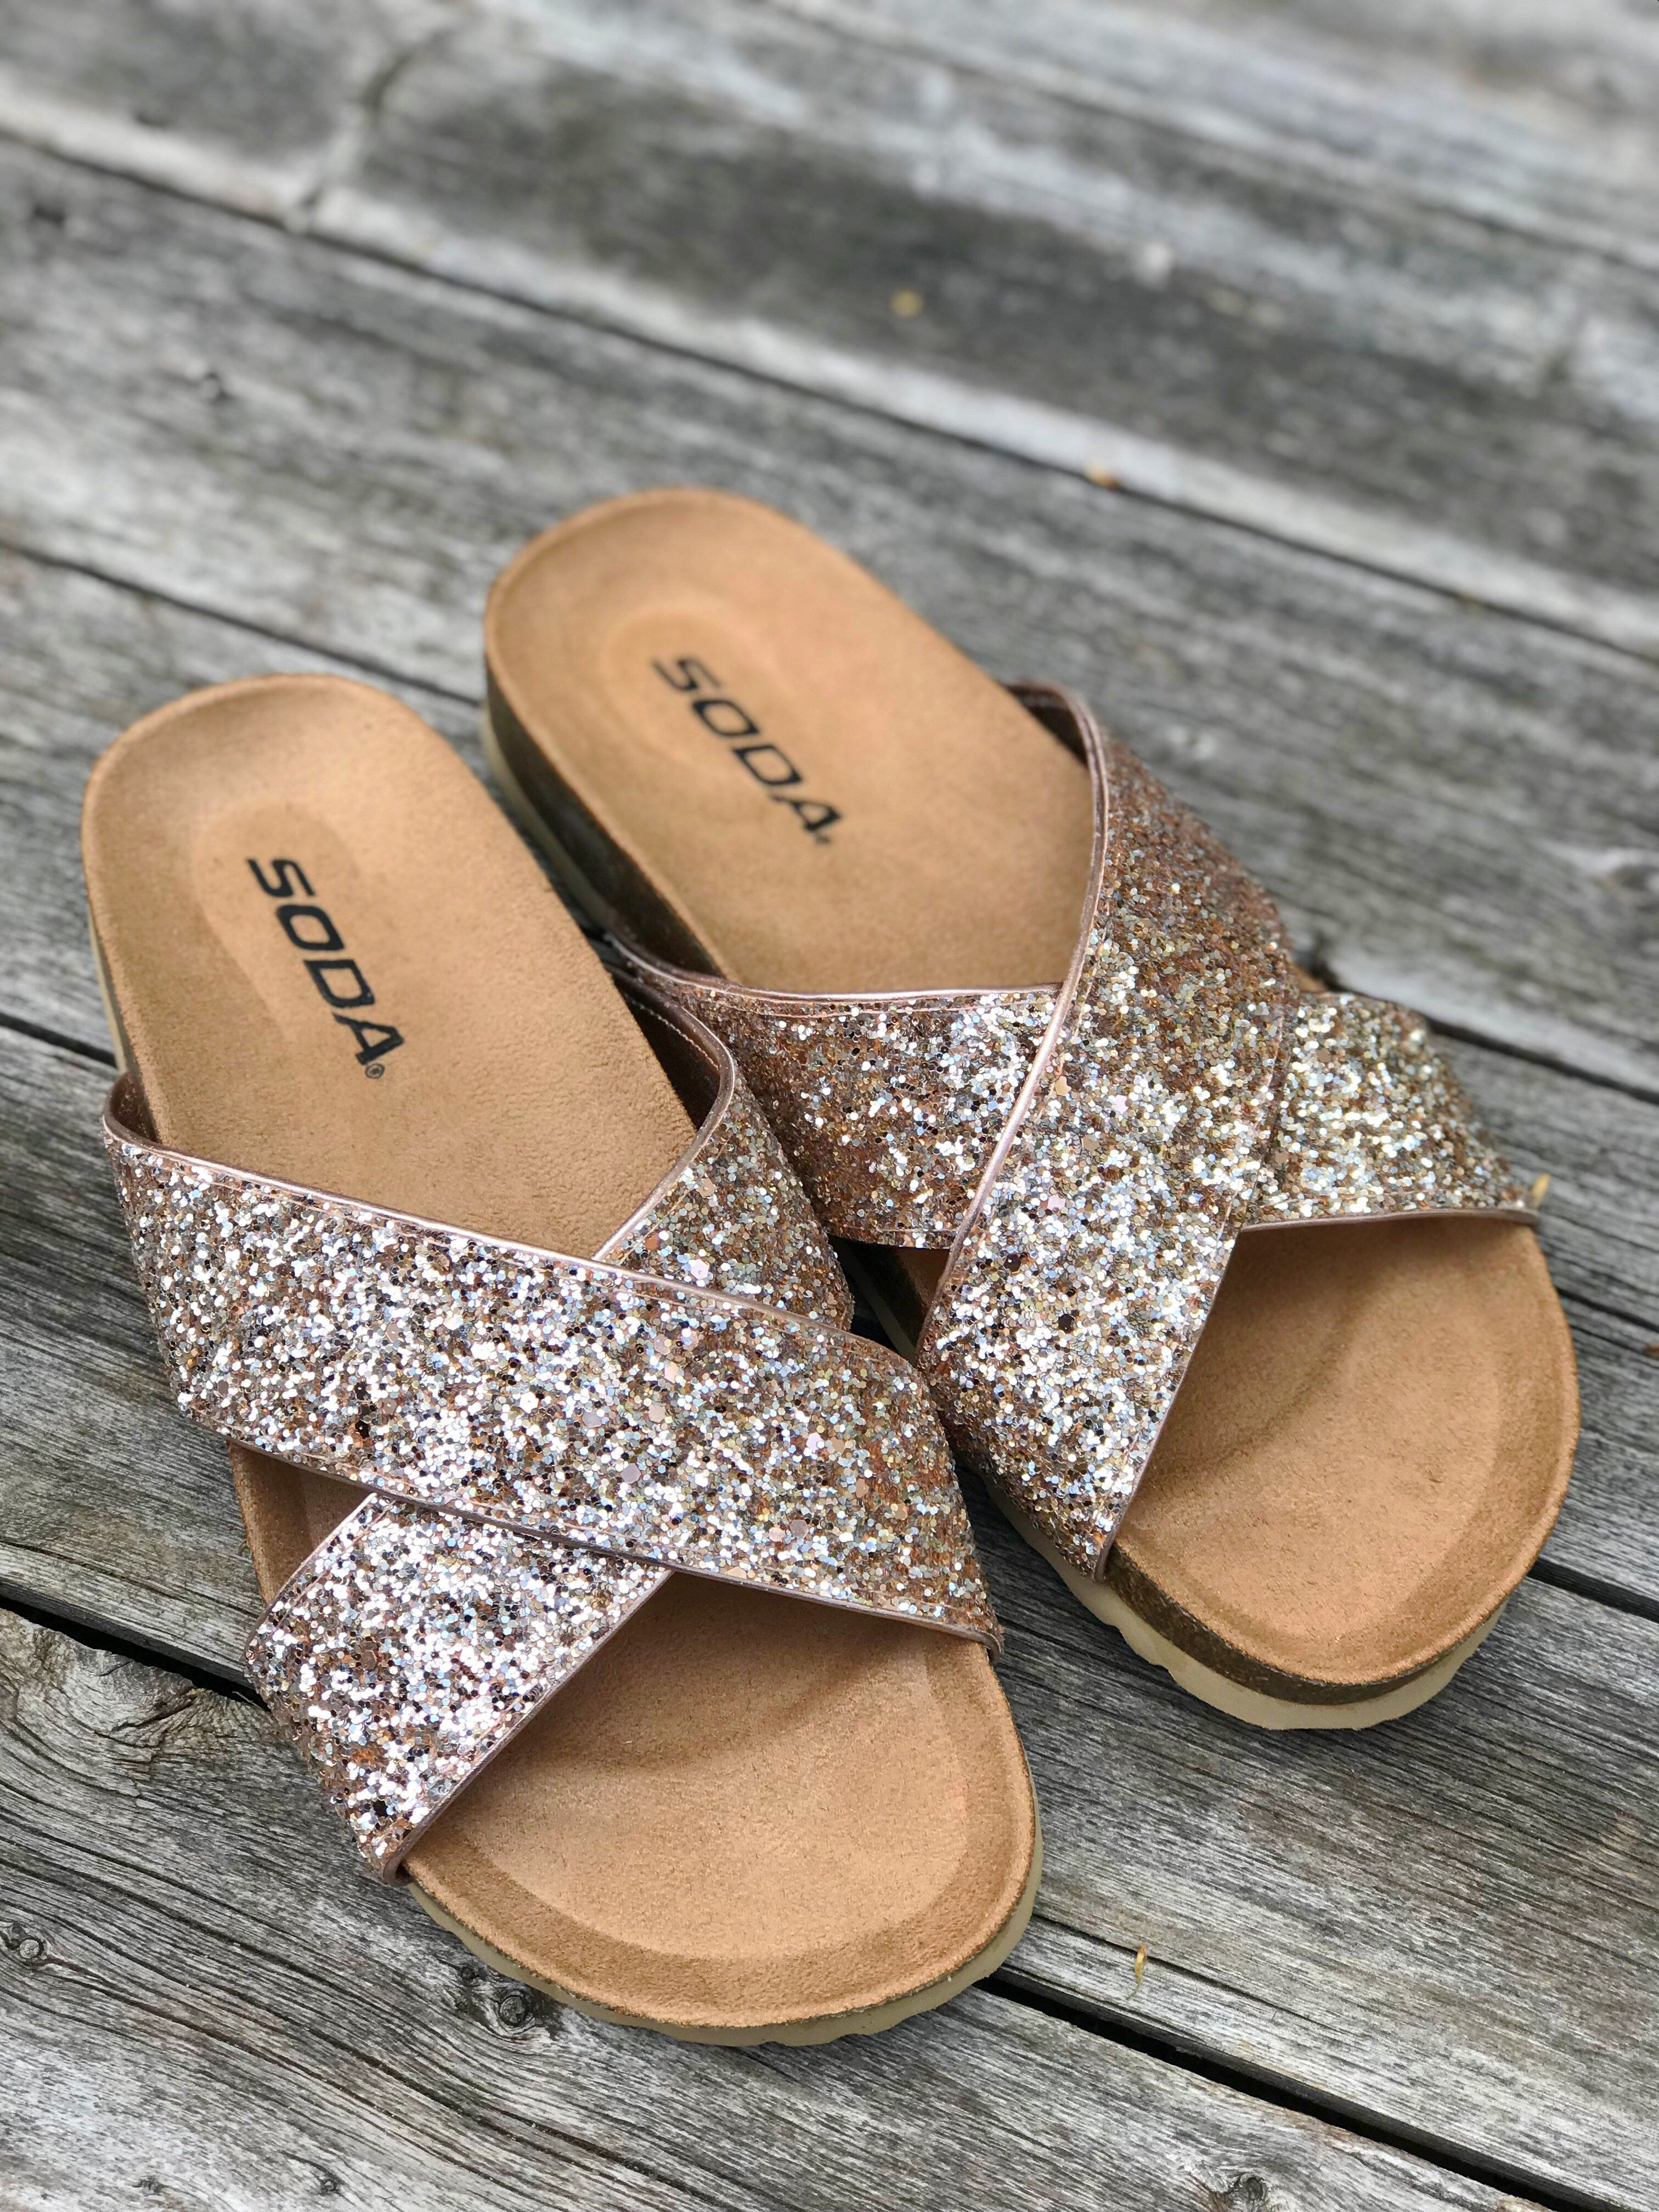 Rose Gold Glitter Midge Criss Cross Sandal | Criss cross